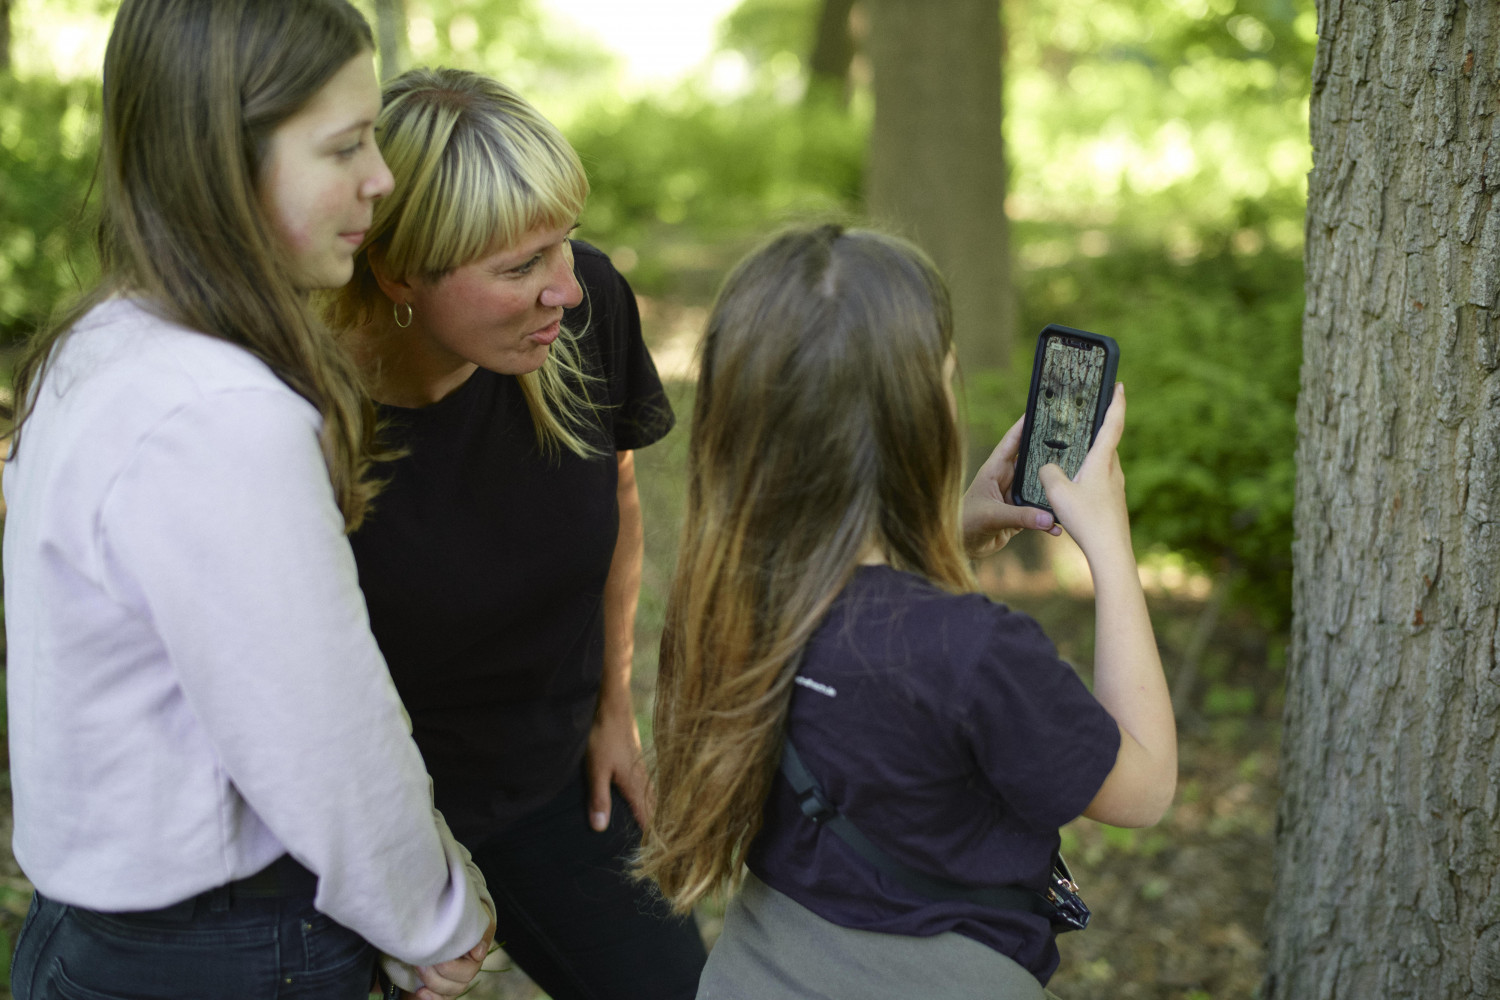 mother-and-daughters-using-earth-speakr-app-02